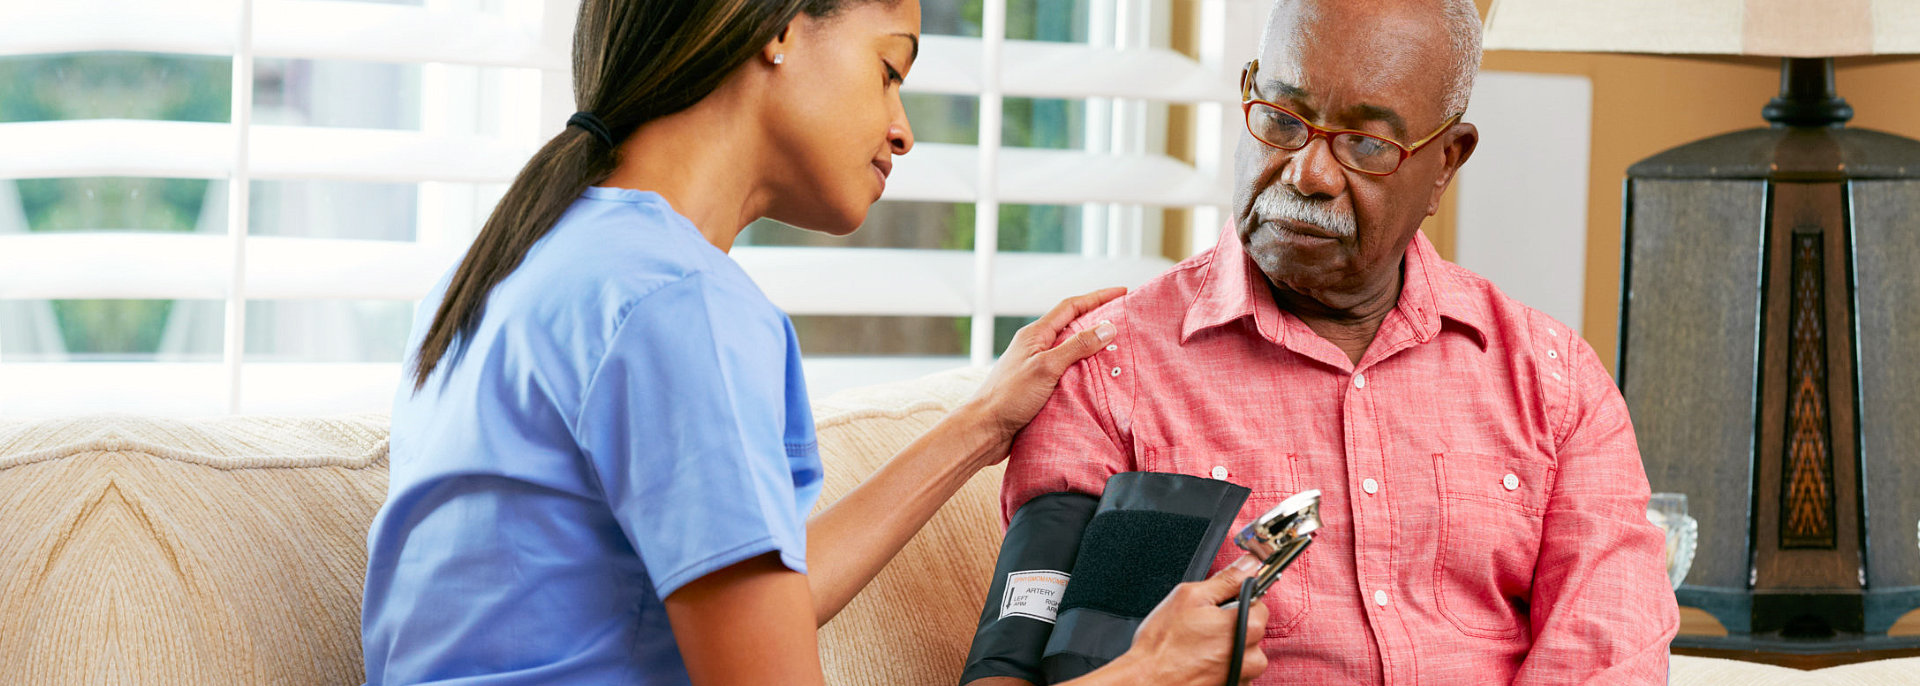 caregiver taking blood pressure